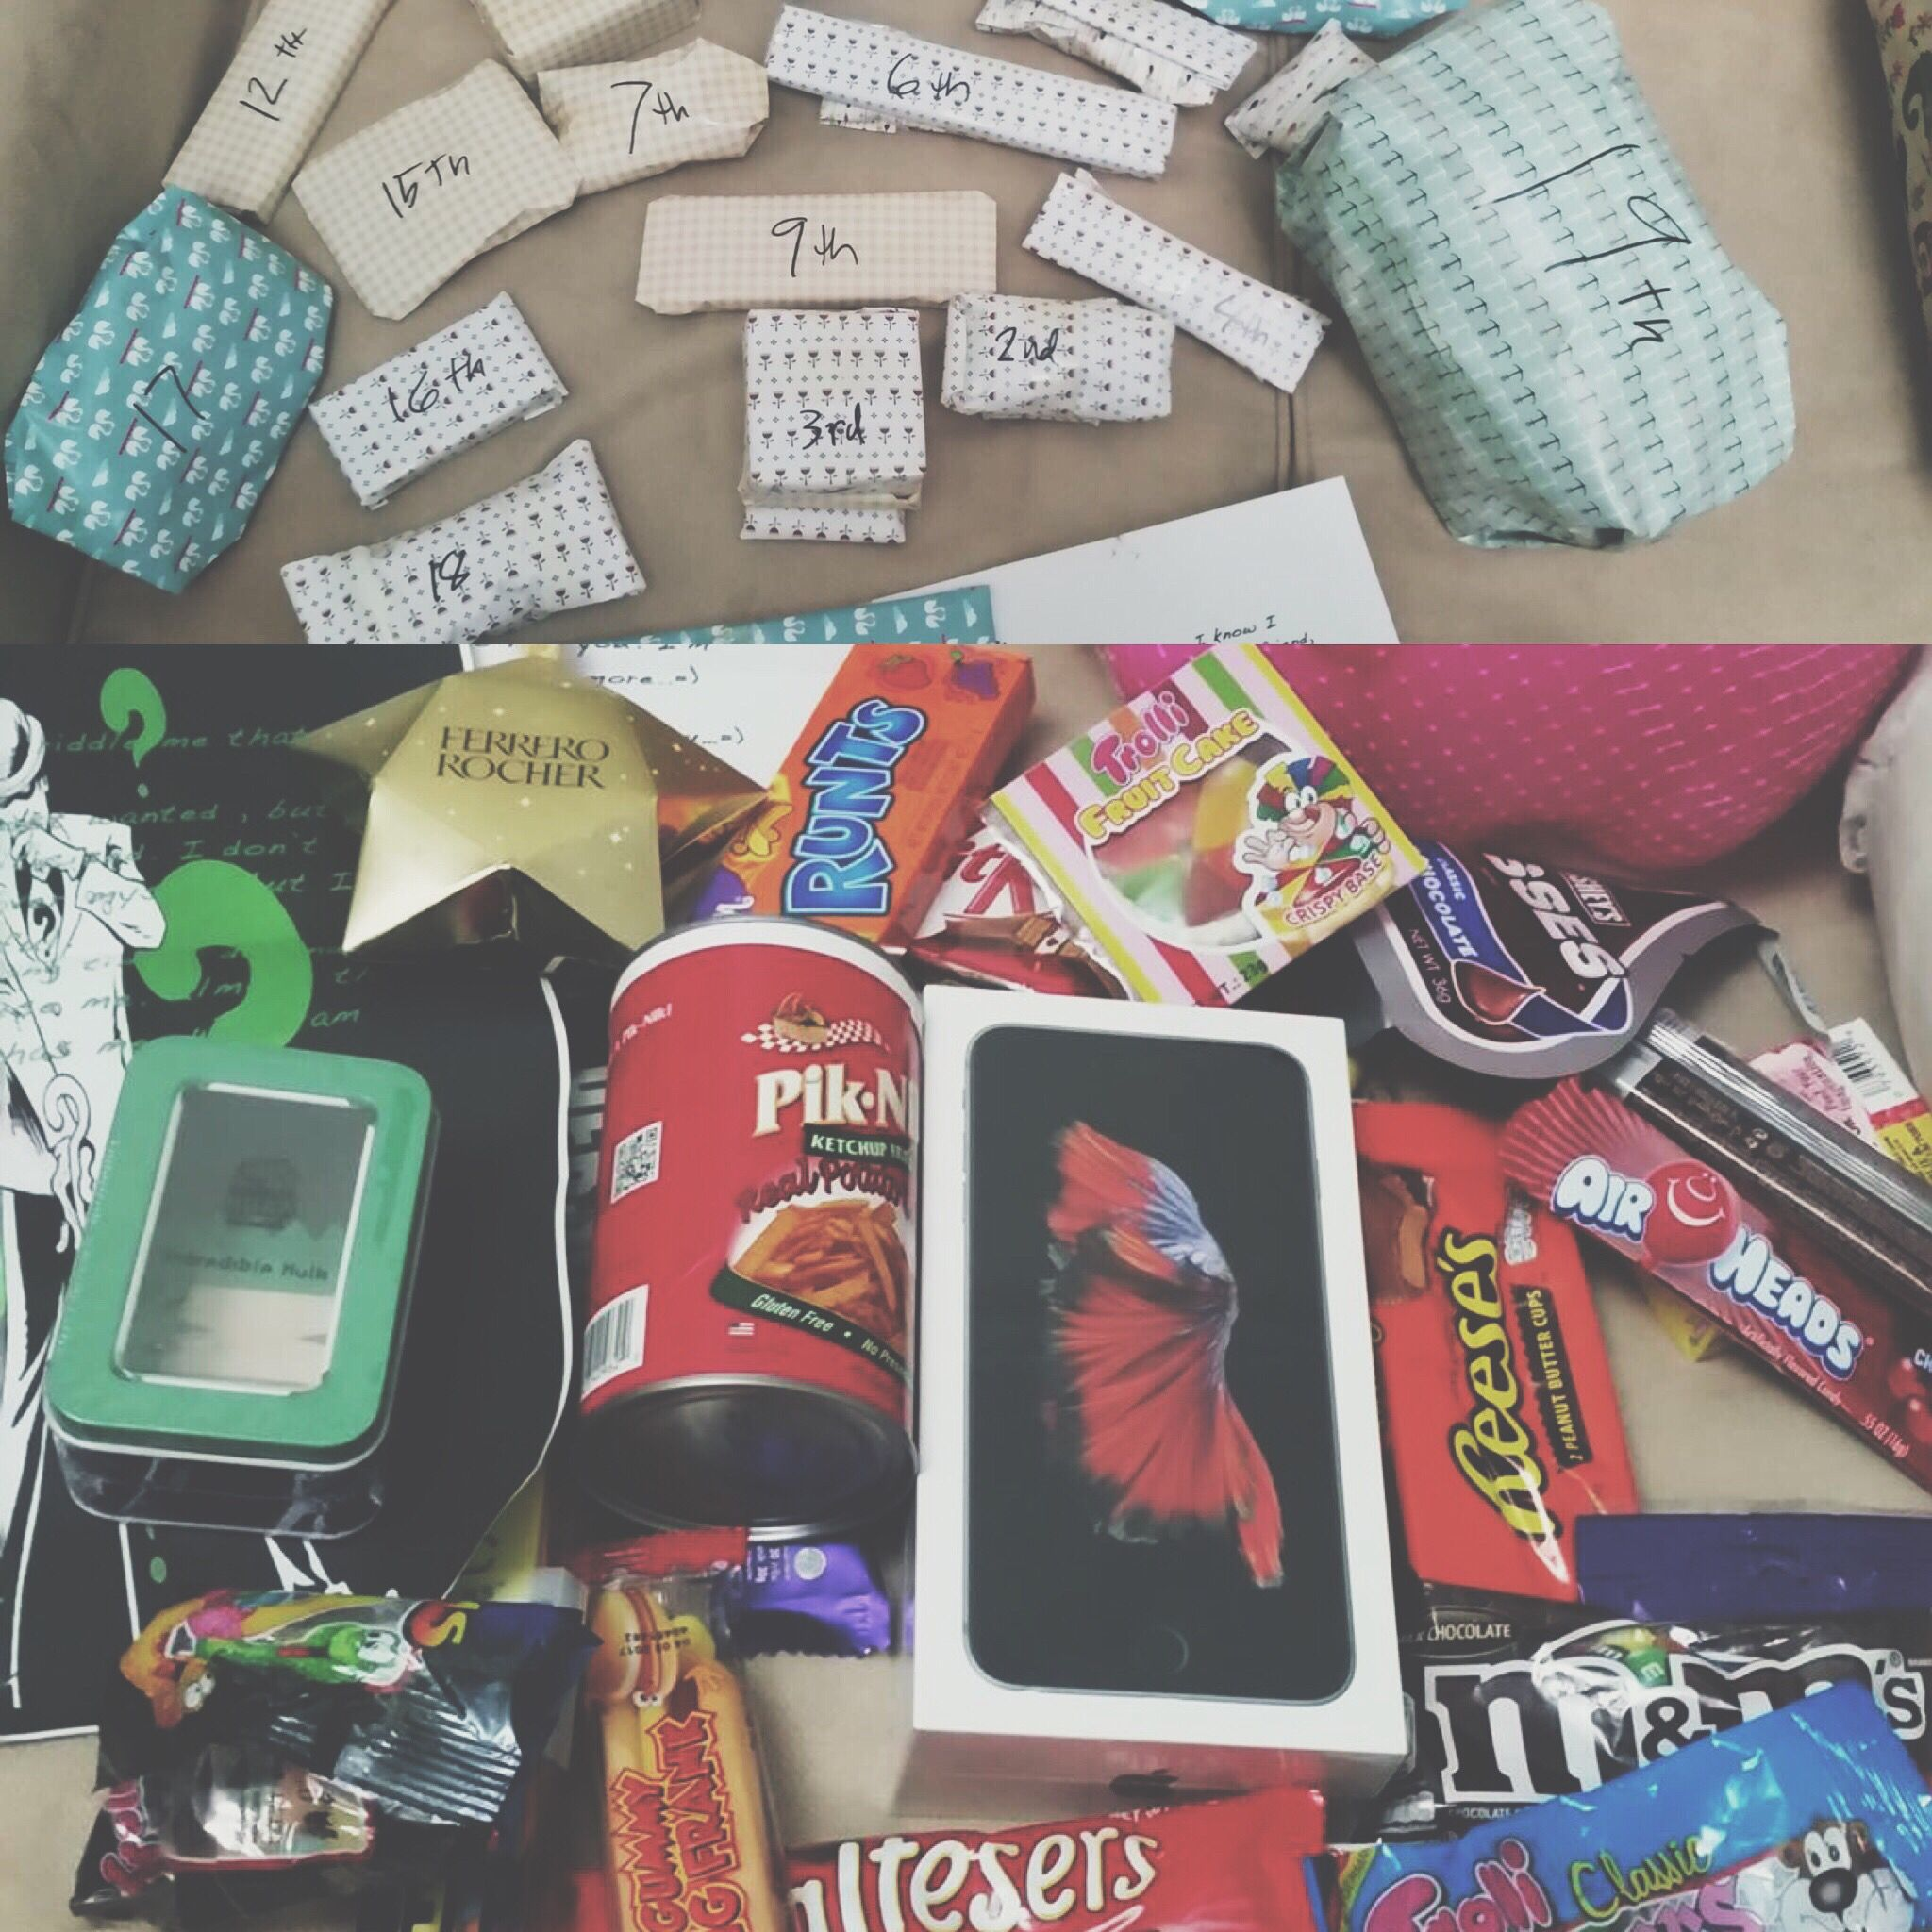 My Boyfriends Birthday Surprise19 Gifts To Open A Riddle Solve All Favorites In One Gift Fun